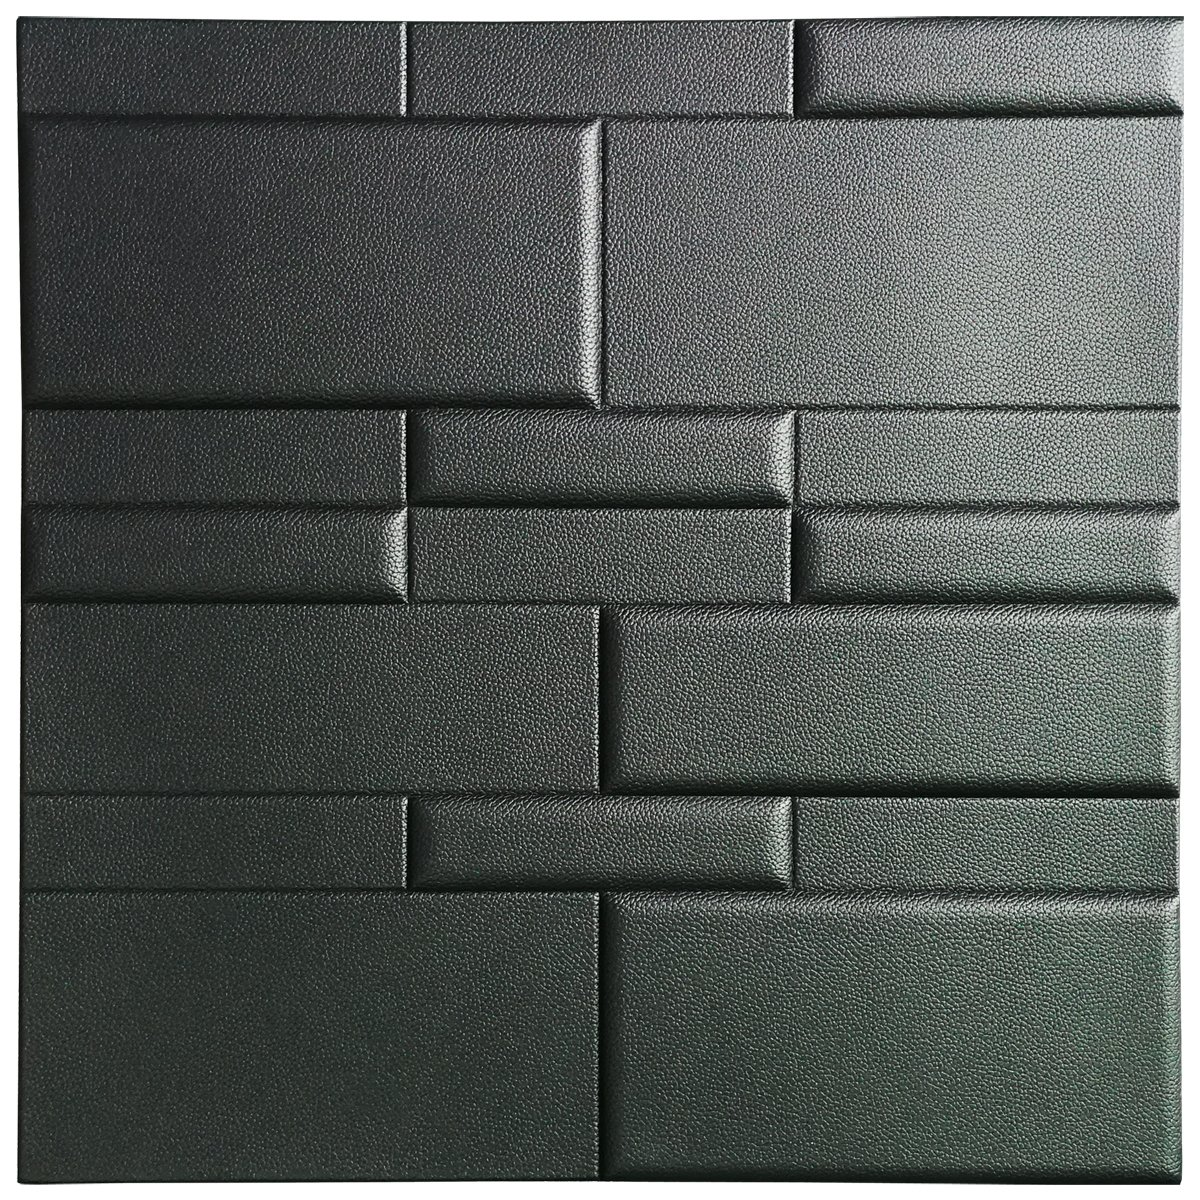 A12033 - Leather 3D Textured Wall Covering PU Material Panels Wave Wall 23.6x23.6 In (1 Piece)